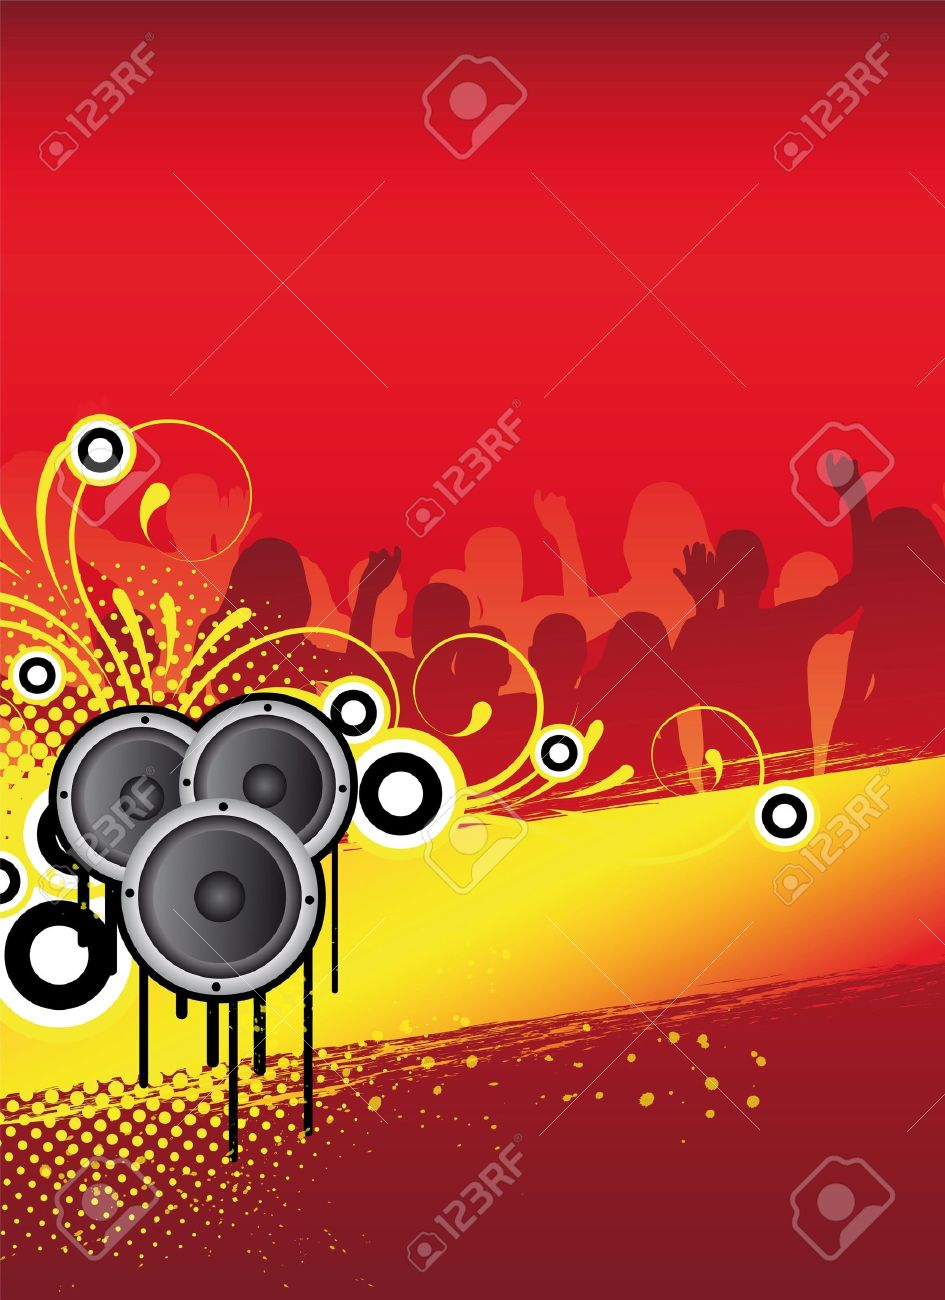 red abstract party flyer design with dancing people Stock Photo - 6320192